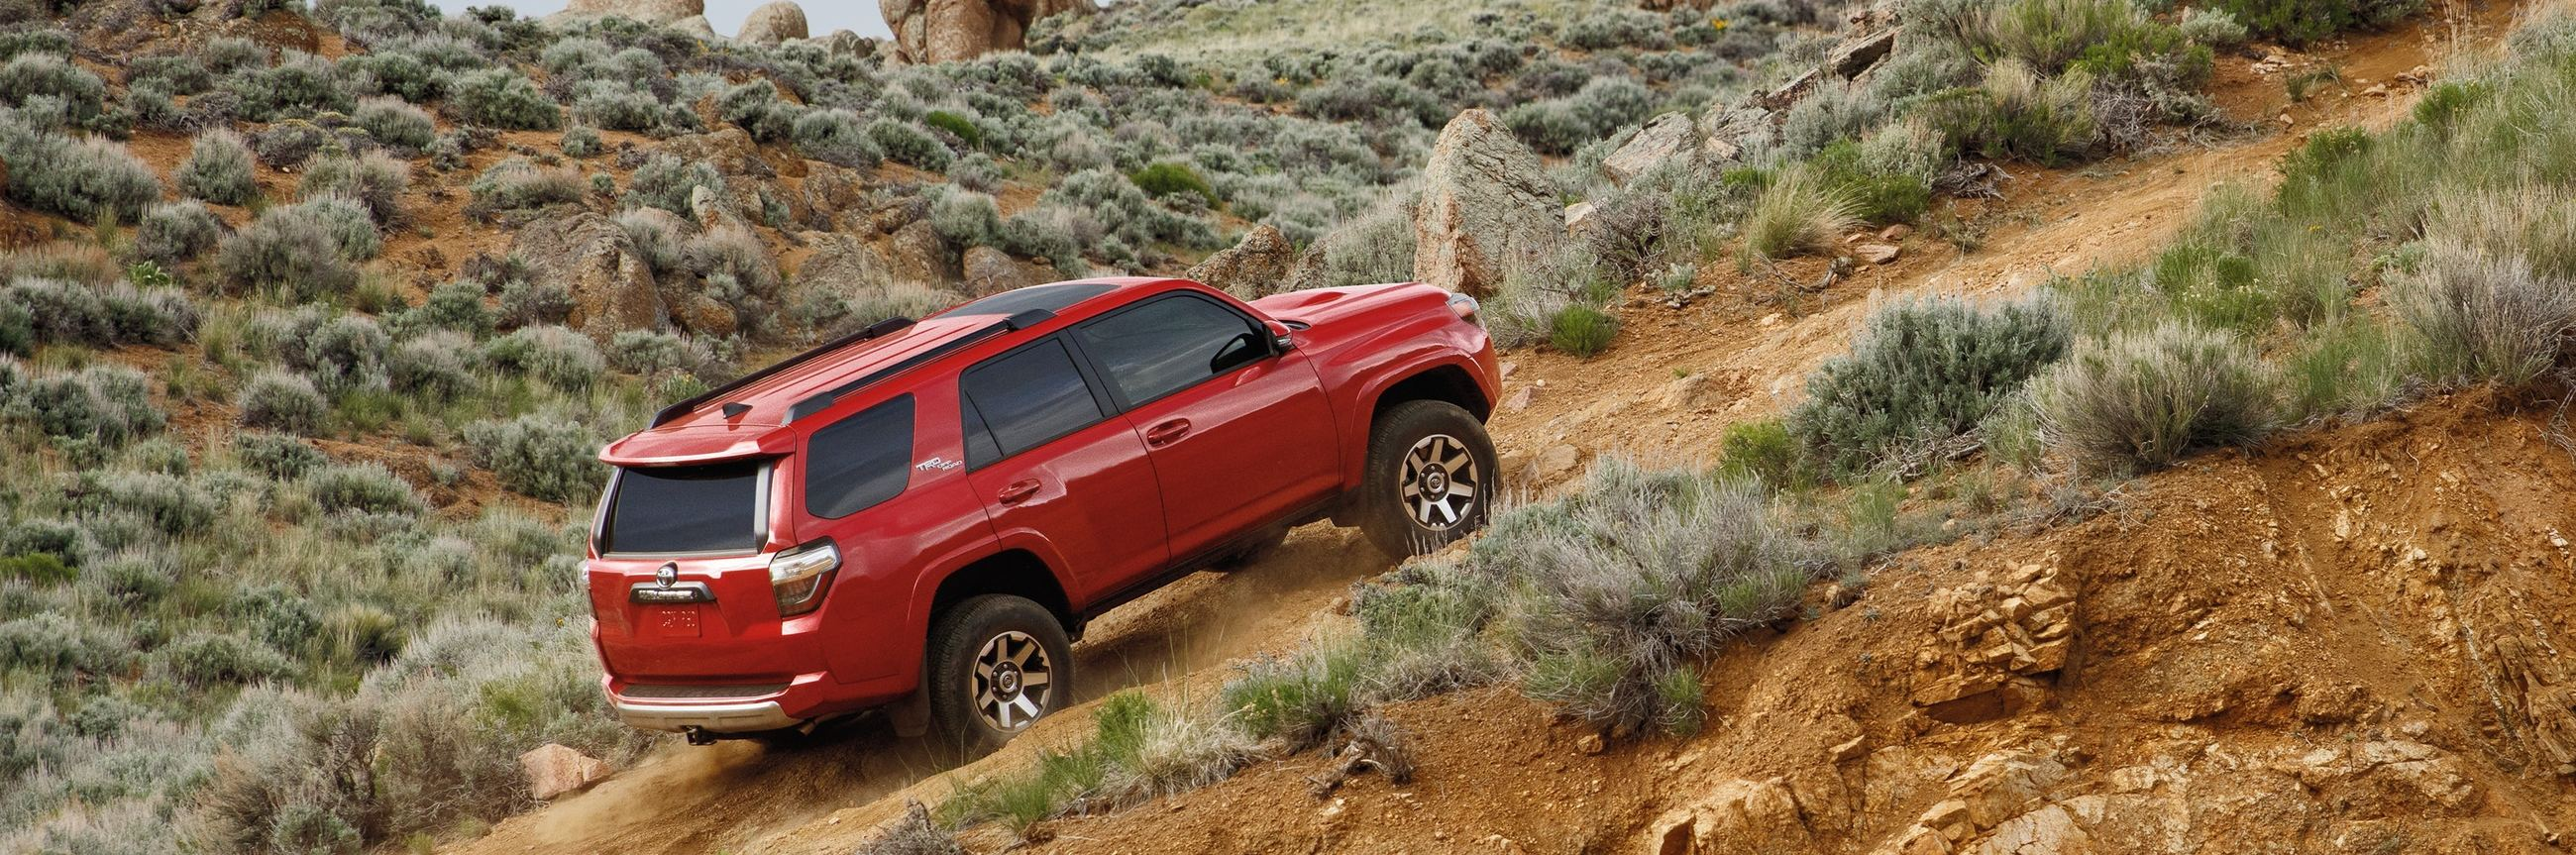 2020 Toyota 4Runner for Sale near Glen Mills, PA